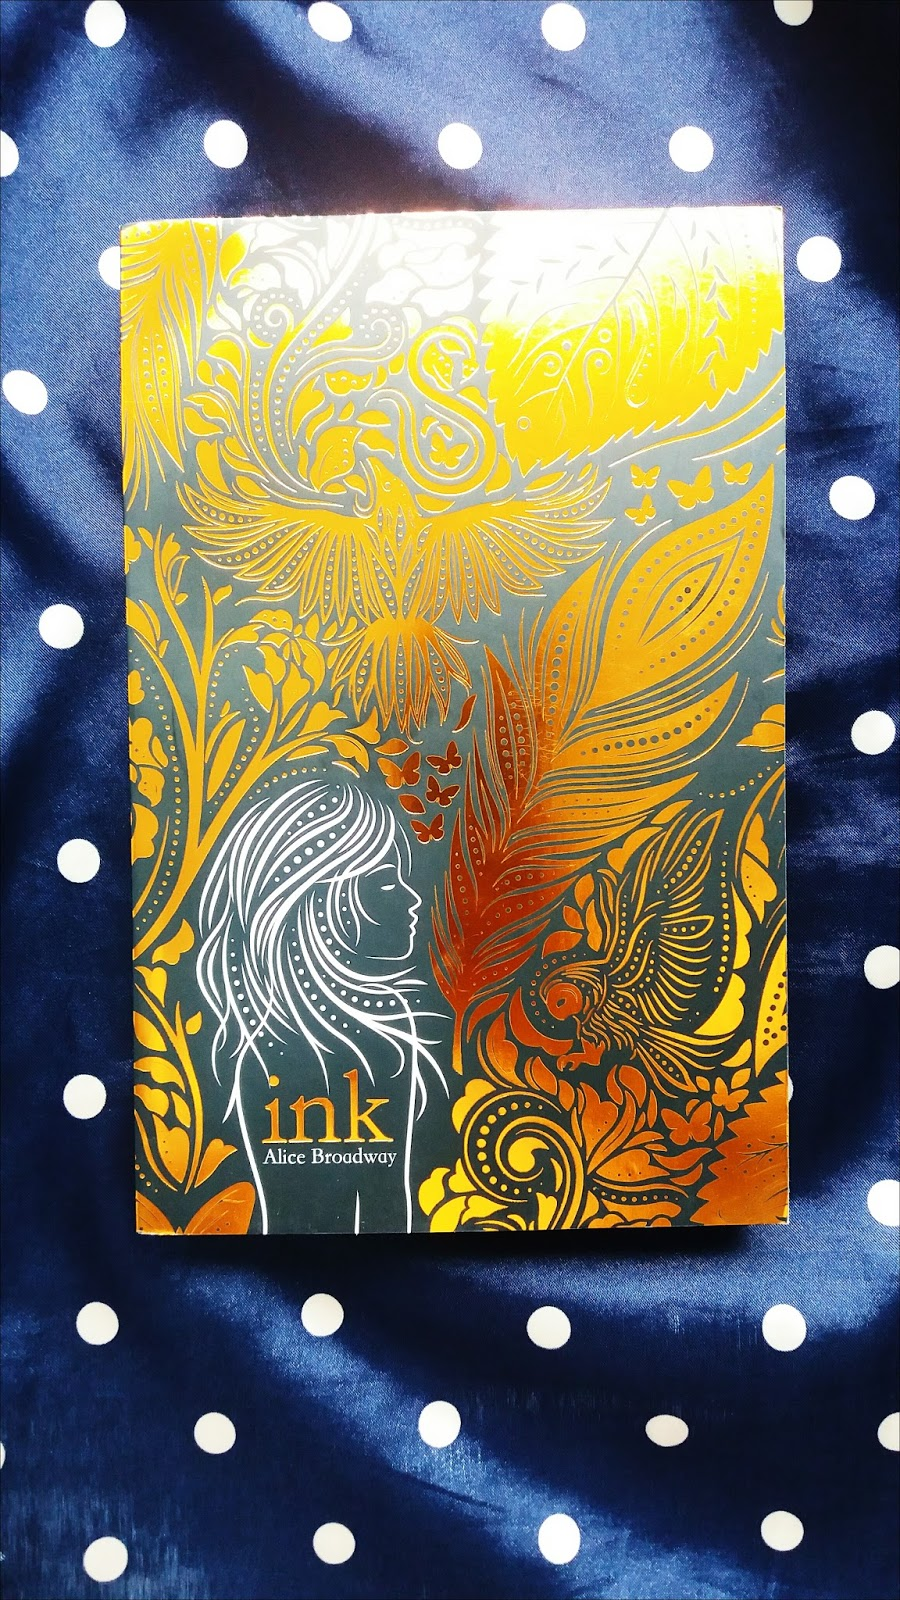 Ink by Alice Broadway Review